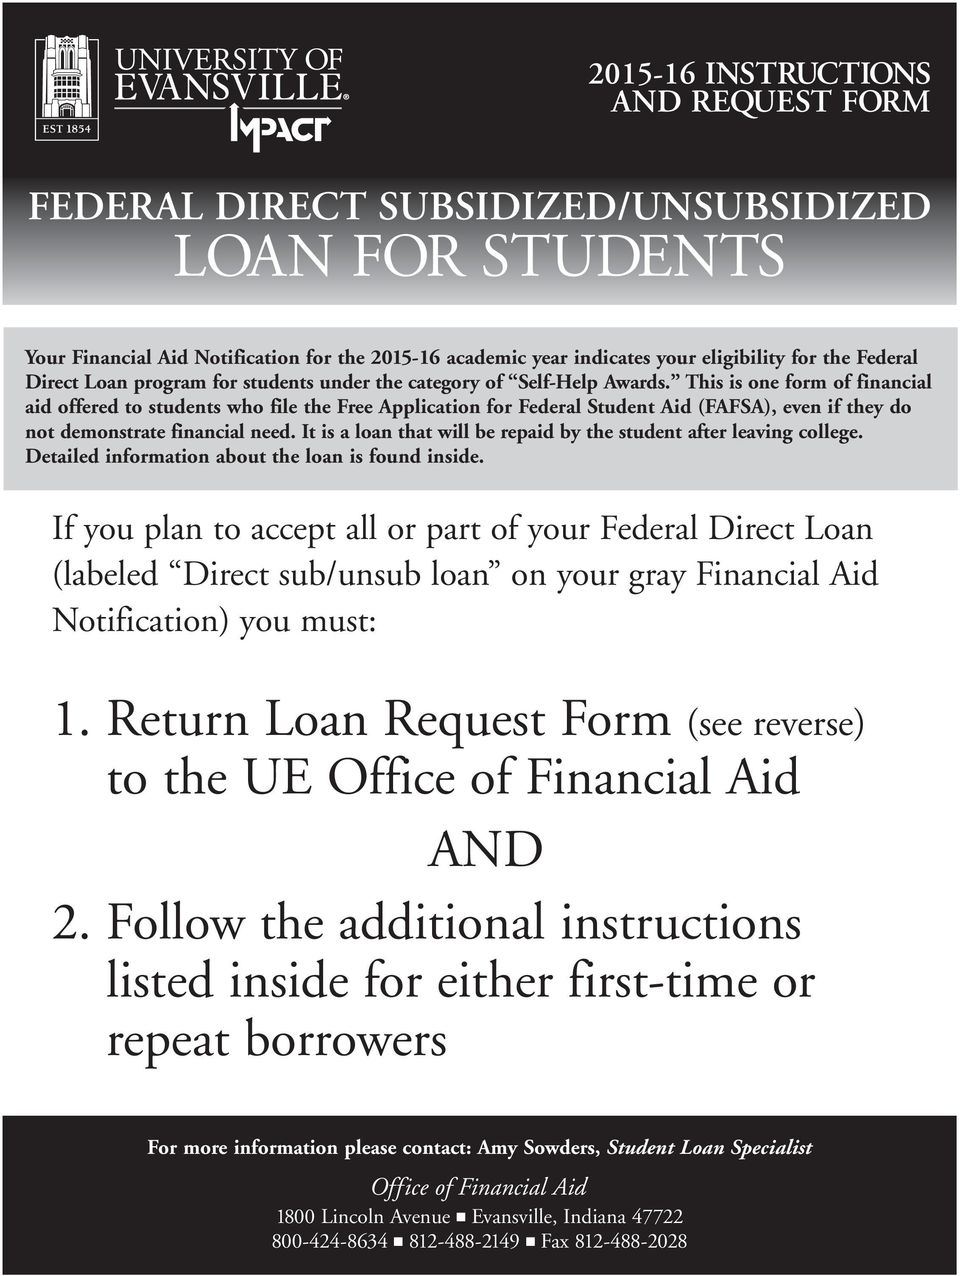 This is one form of financial aid offered to students who file the Free Application for Federal Student Aid (FAFSA), even if they do not demonstrate financial need.